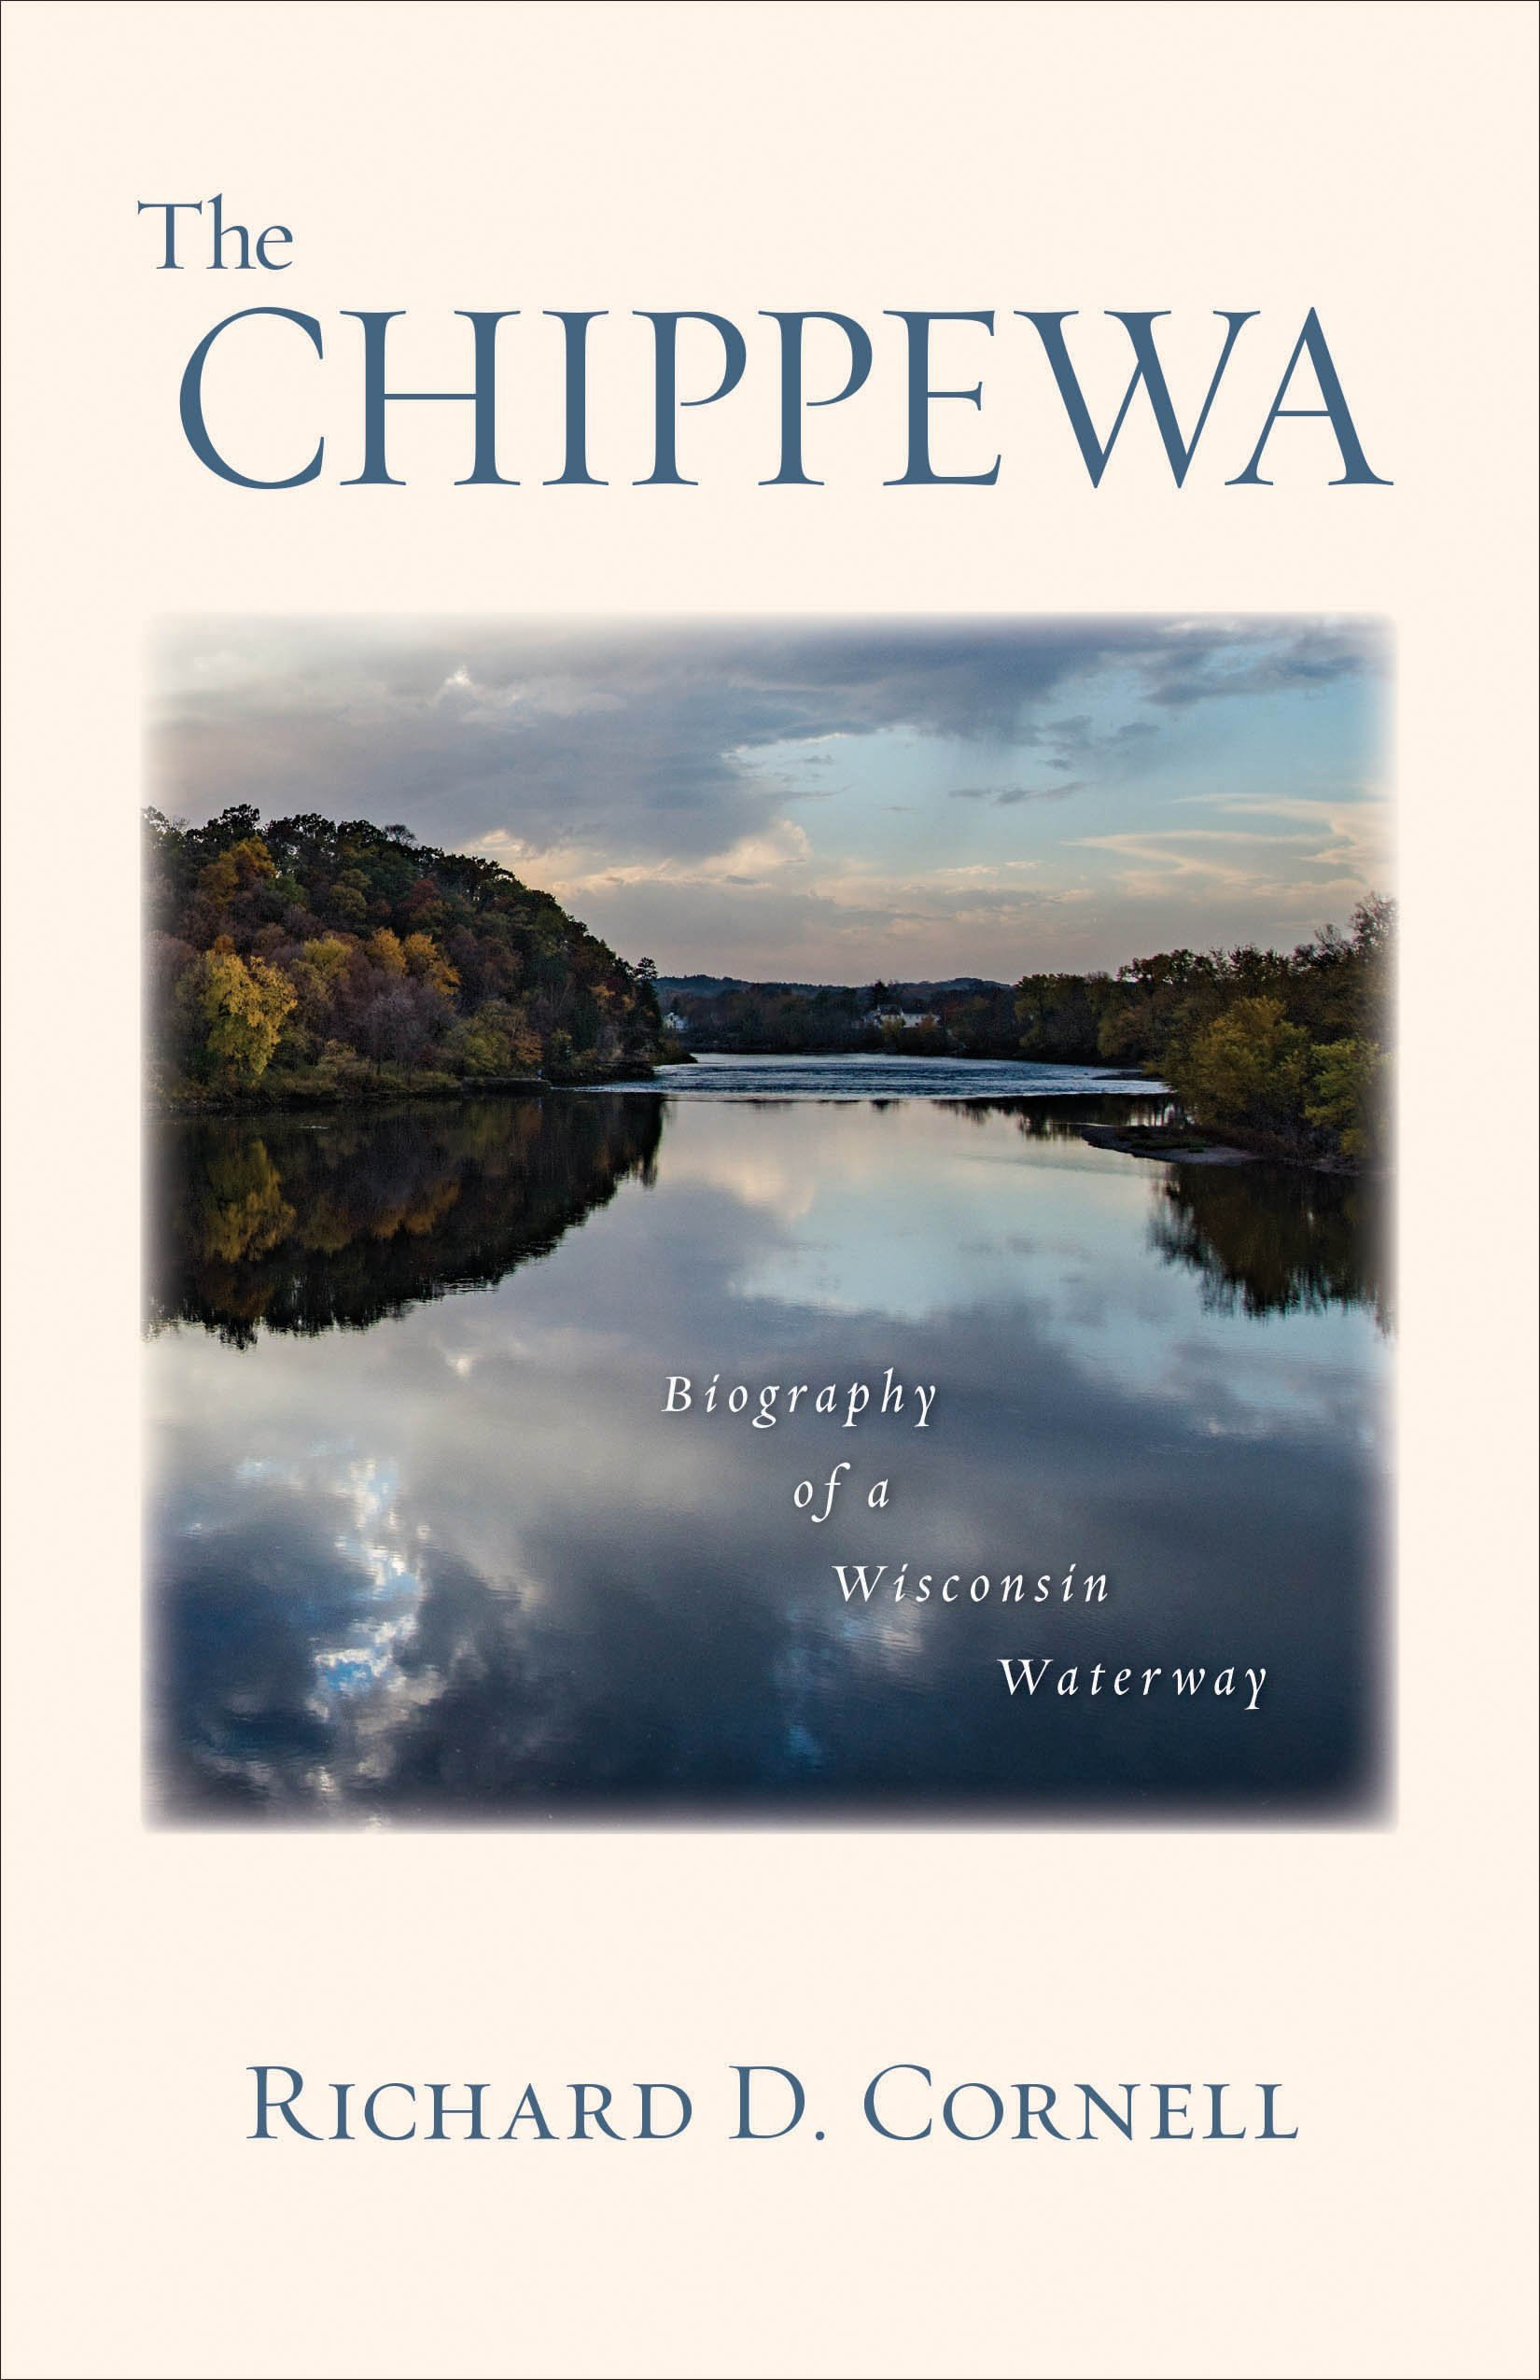 The Chippewa Biography of a Wisconsin Waterway